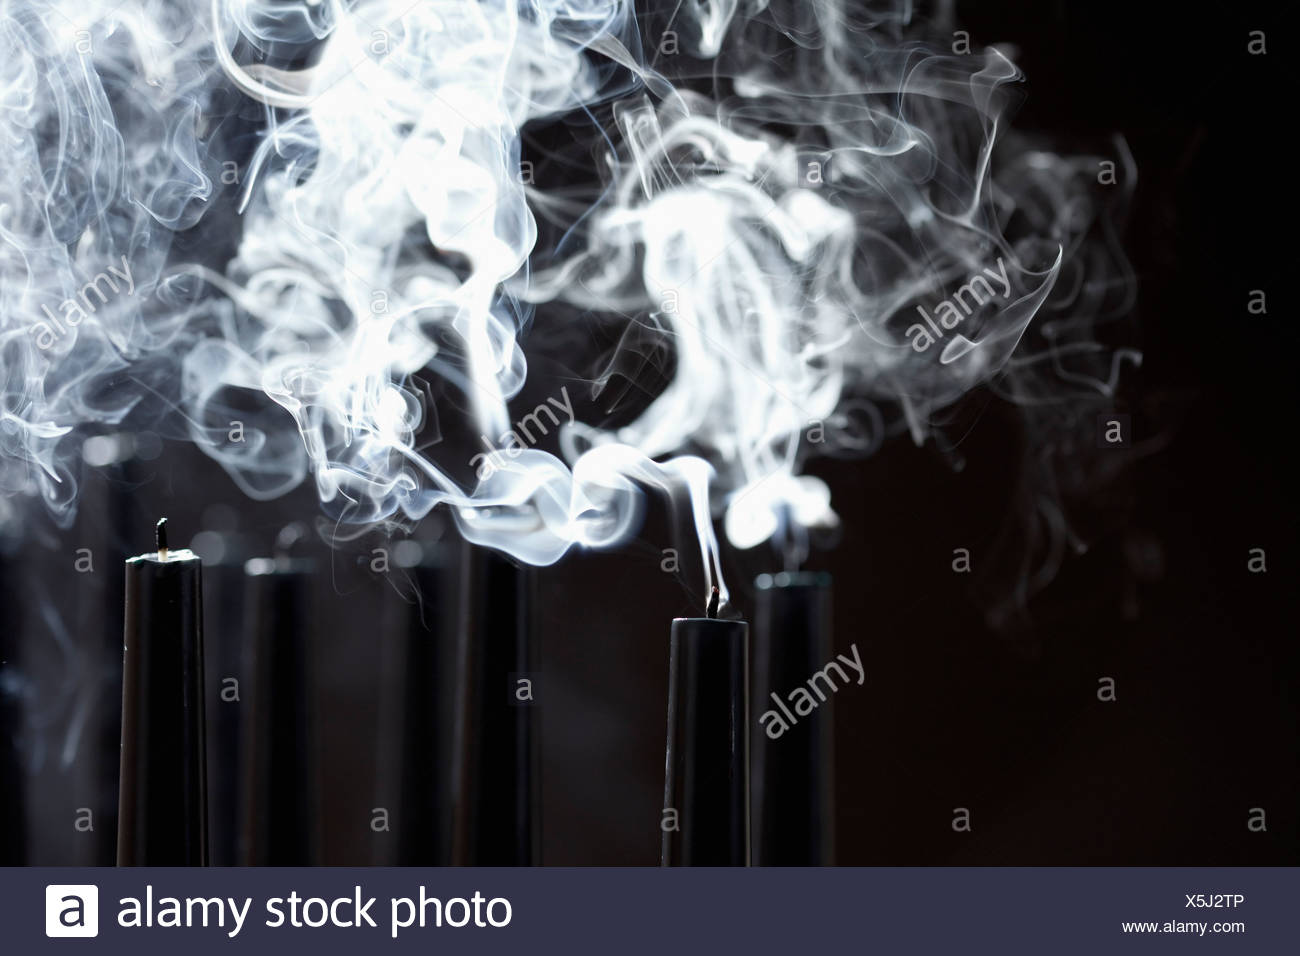 Close up of smoking black candles - Stock Image